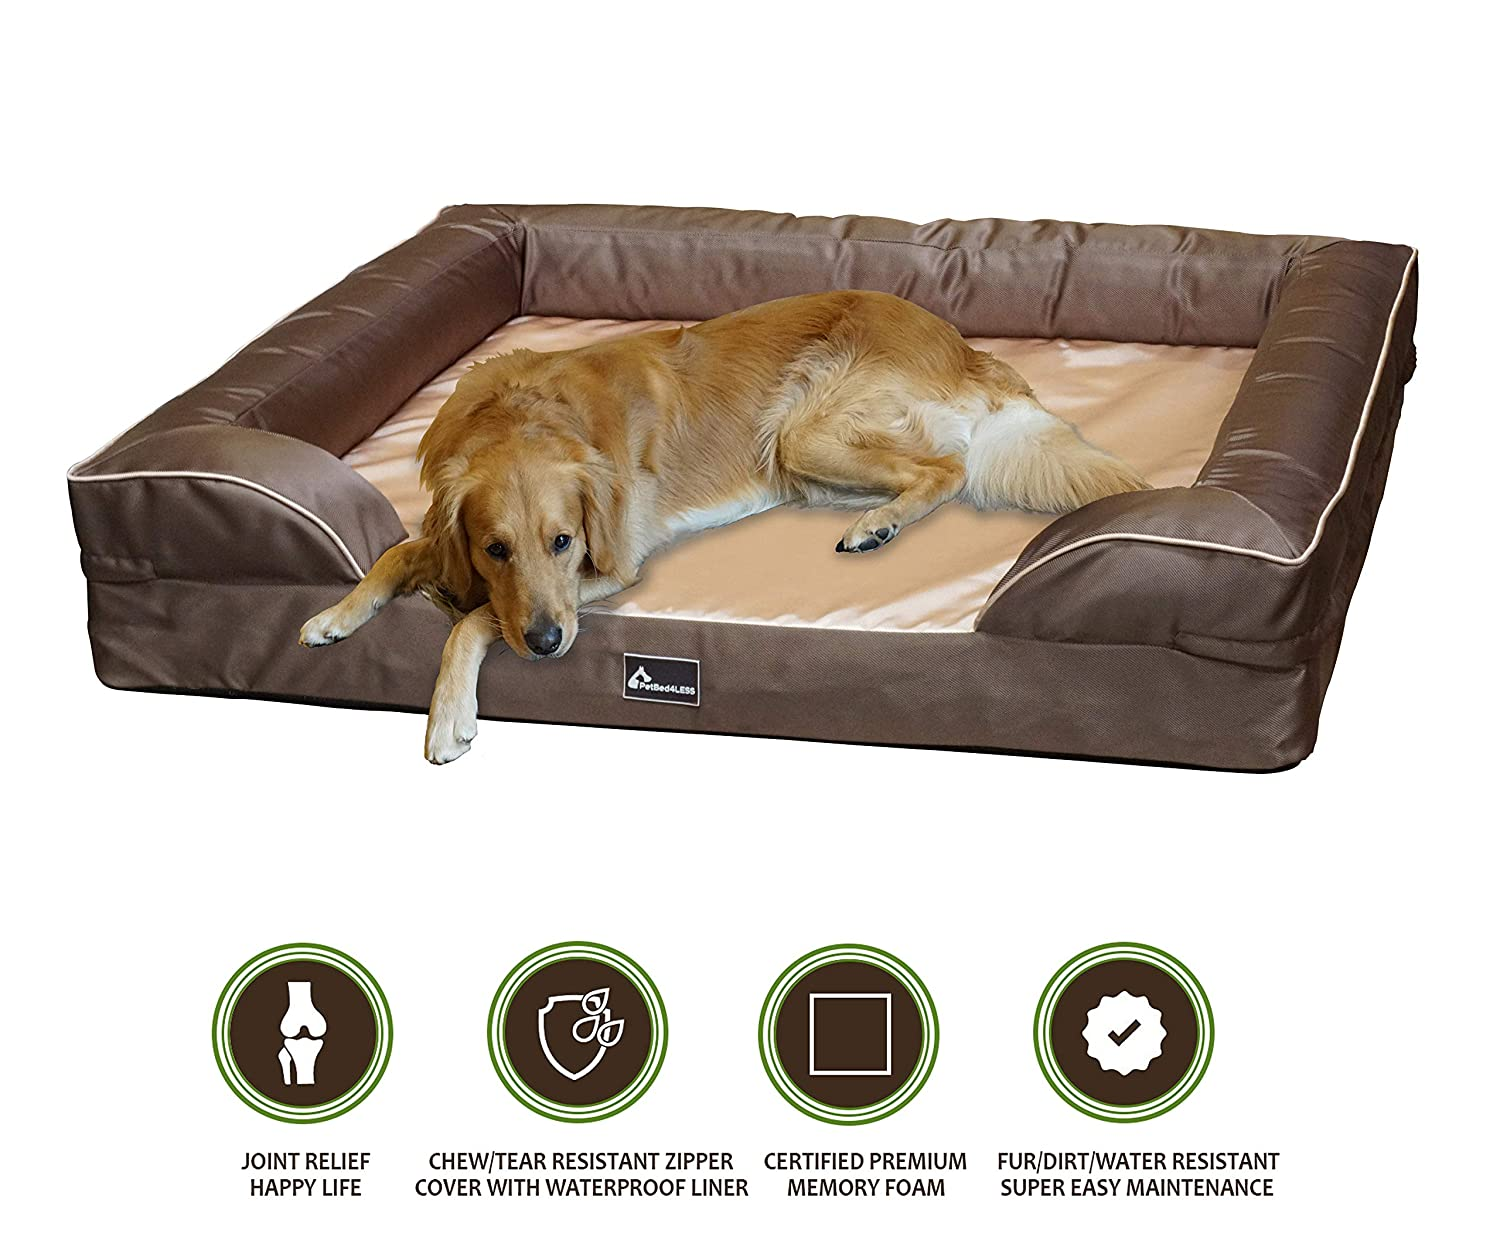 PetBed4Less Deluxe Dog Bed Sofa Lounge w Premium Orthopedic Memory Foam Heavy Duty Removable Zipper Cover Free Bonus Waterproof Liner Replacement Zipper Covers Available